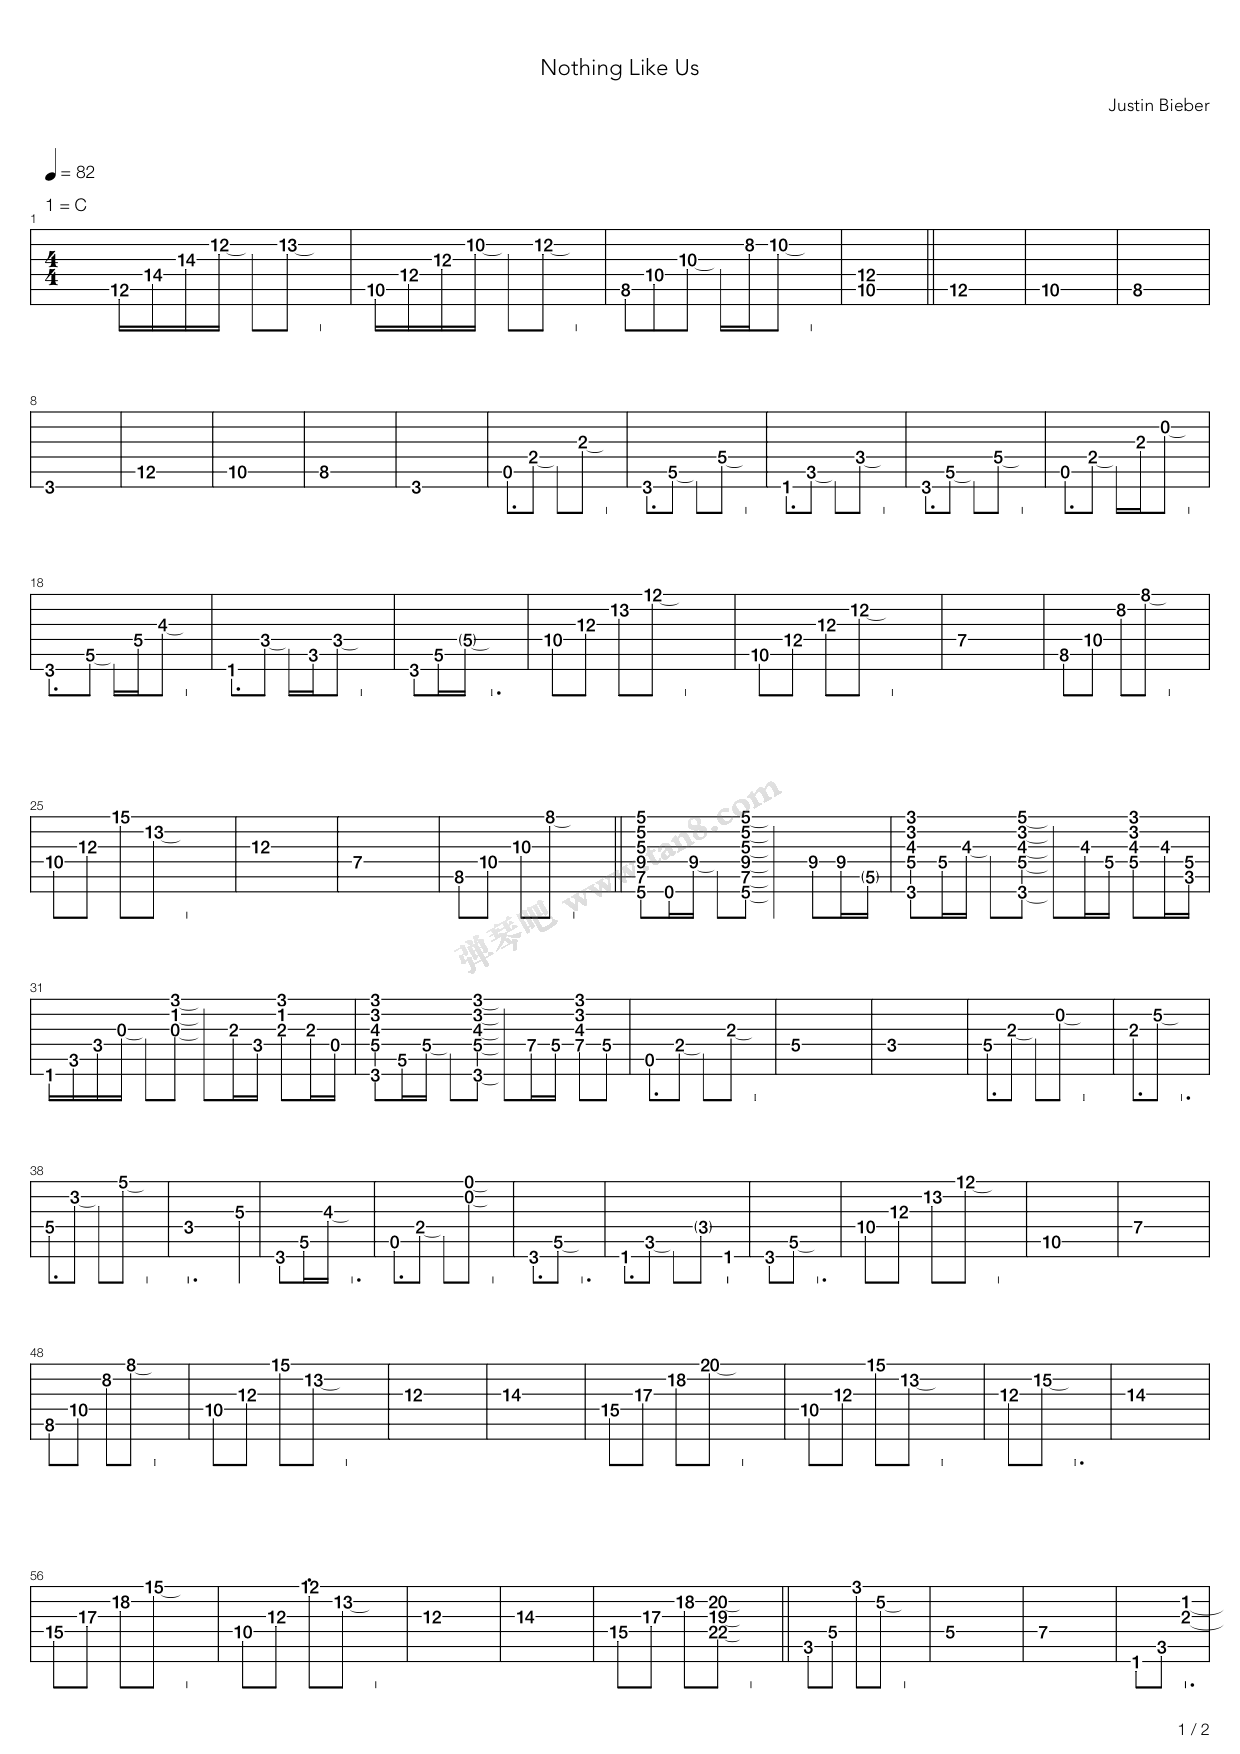 Nothing Like Us by Justin Bieber Guitar Tabs Chords Sheet